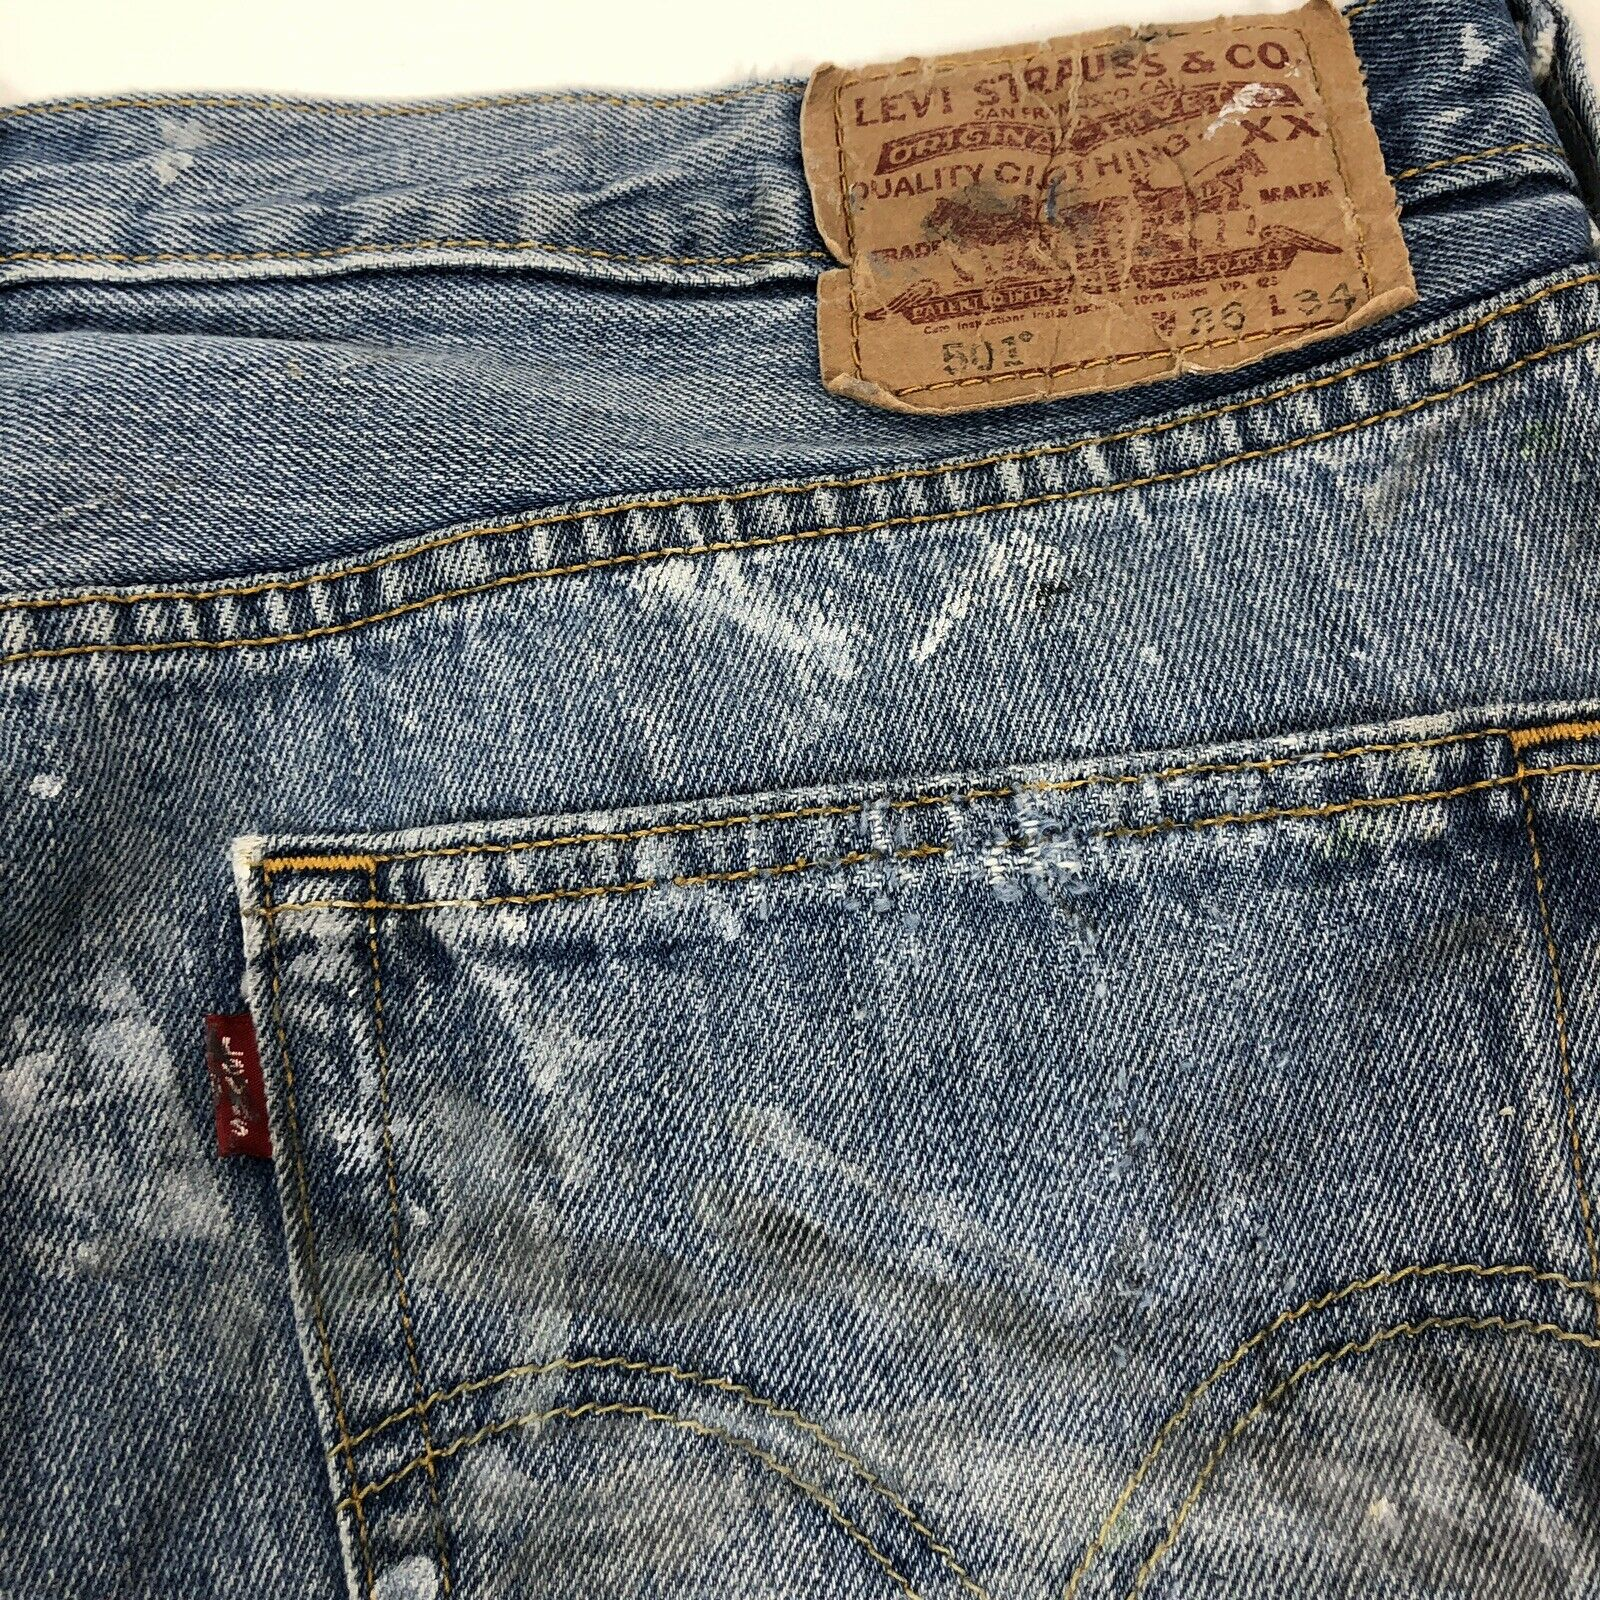 vtg 90s LEVI'S 501 Faded Work Worn Button Fly Jea… - image 5